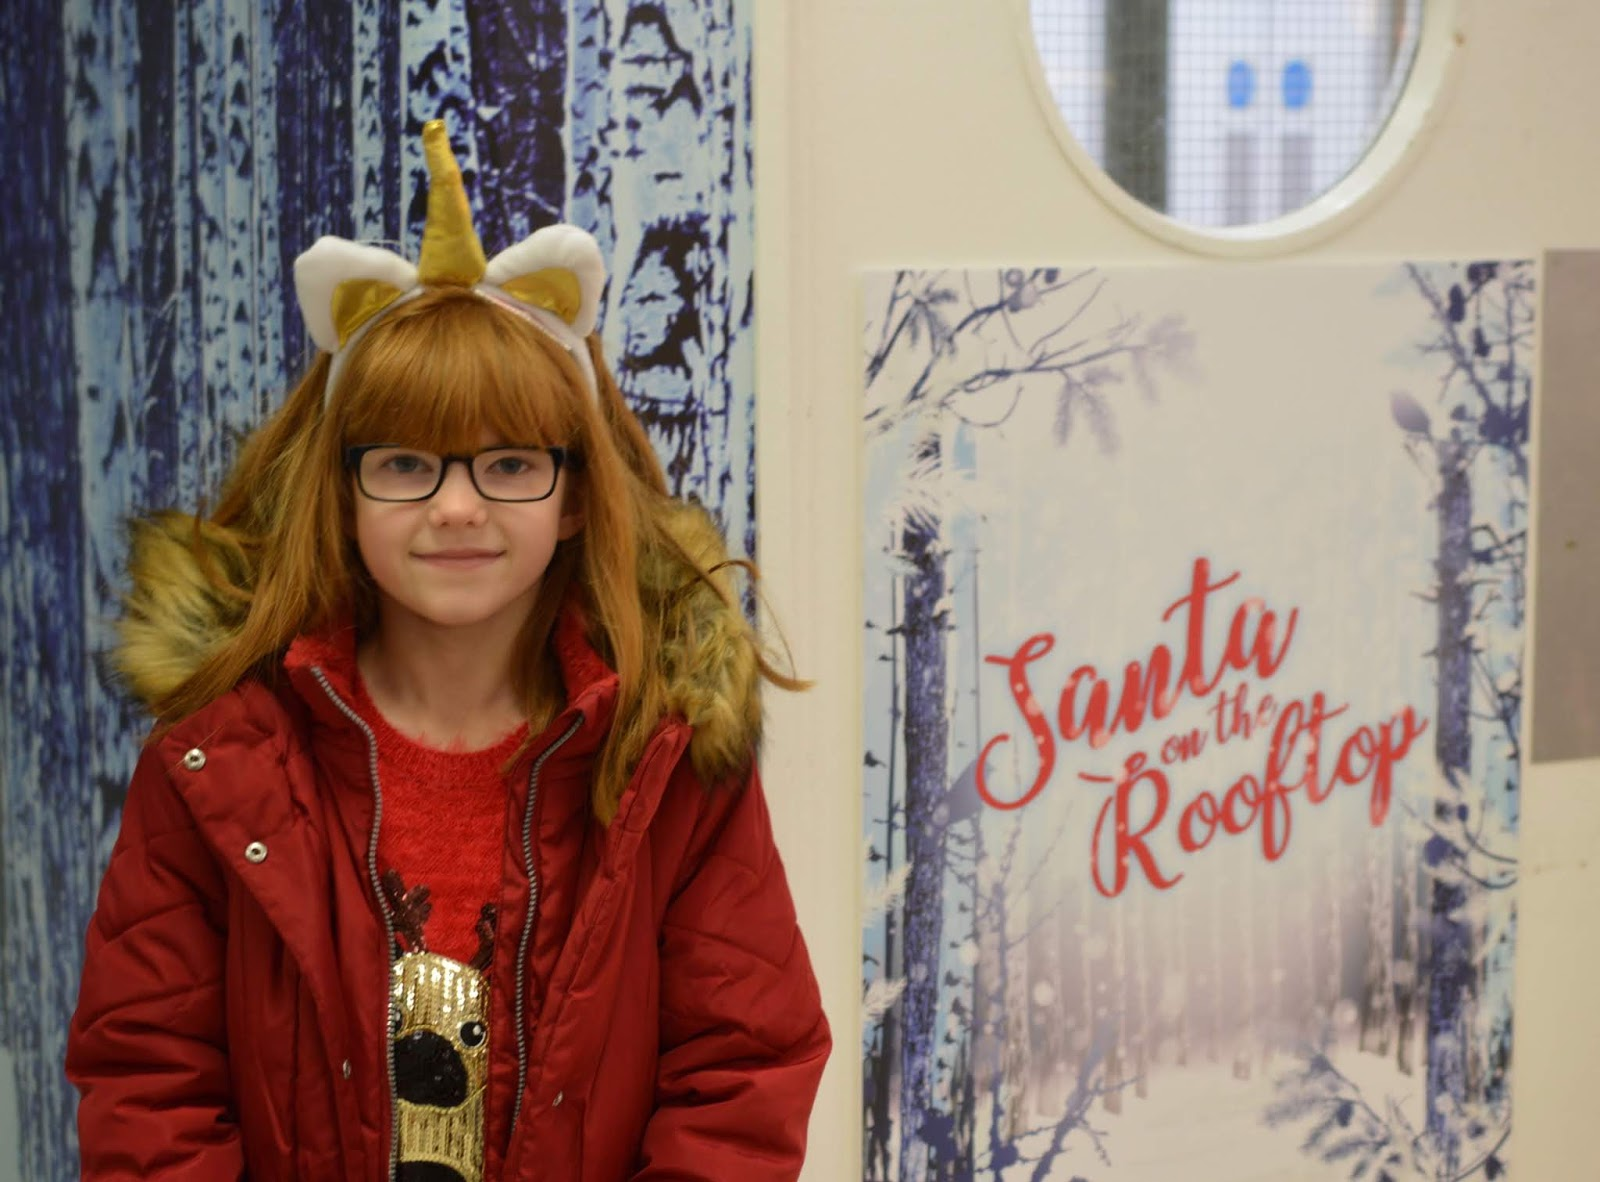 Santa on the Rooftop at Fenwick Newcastle | A Review - life doors and entrance